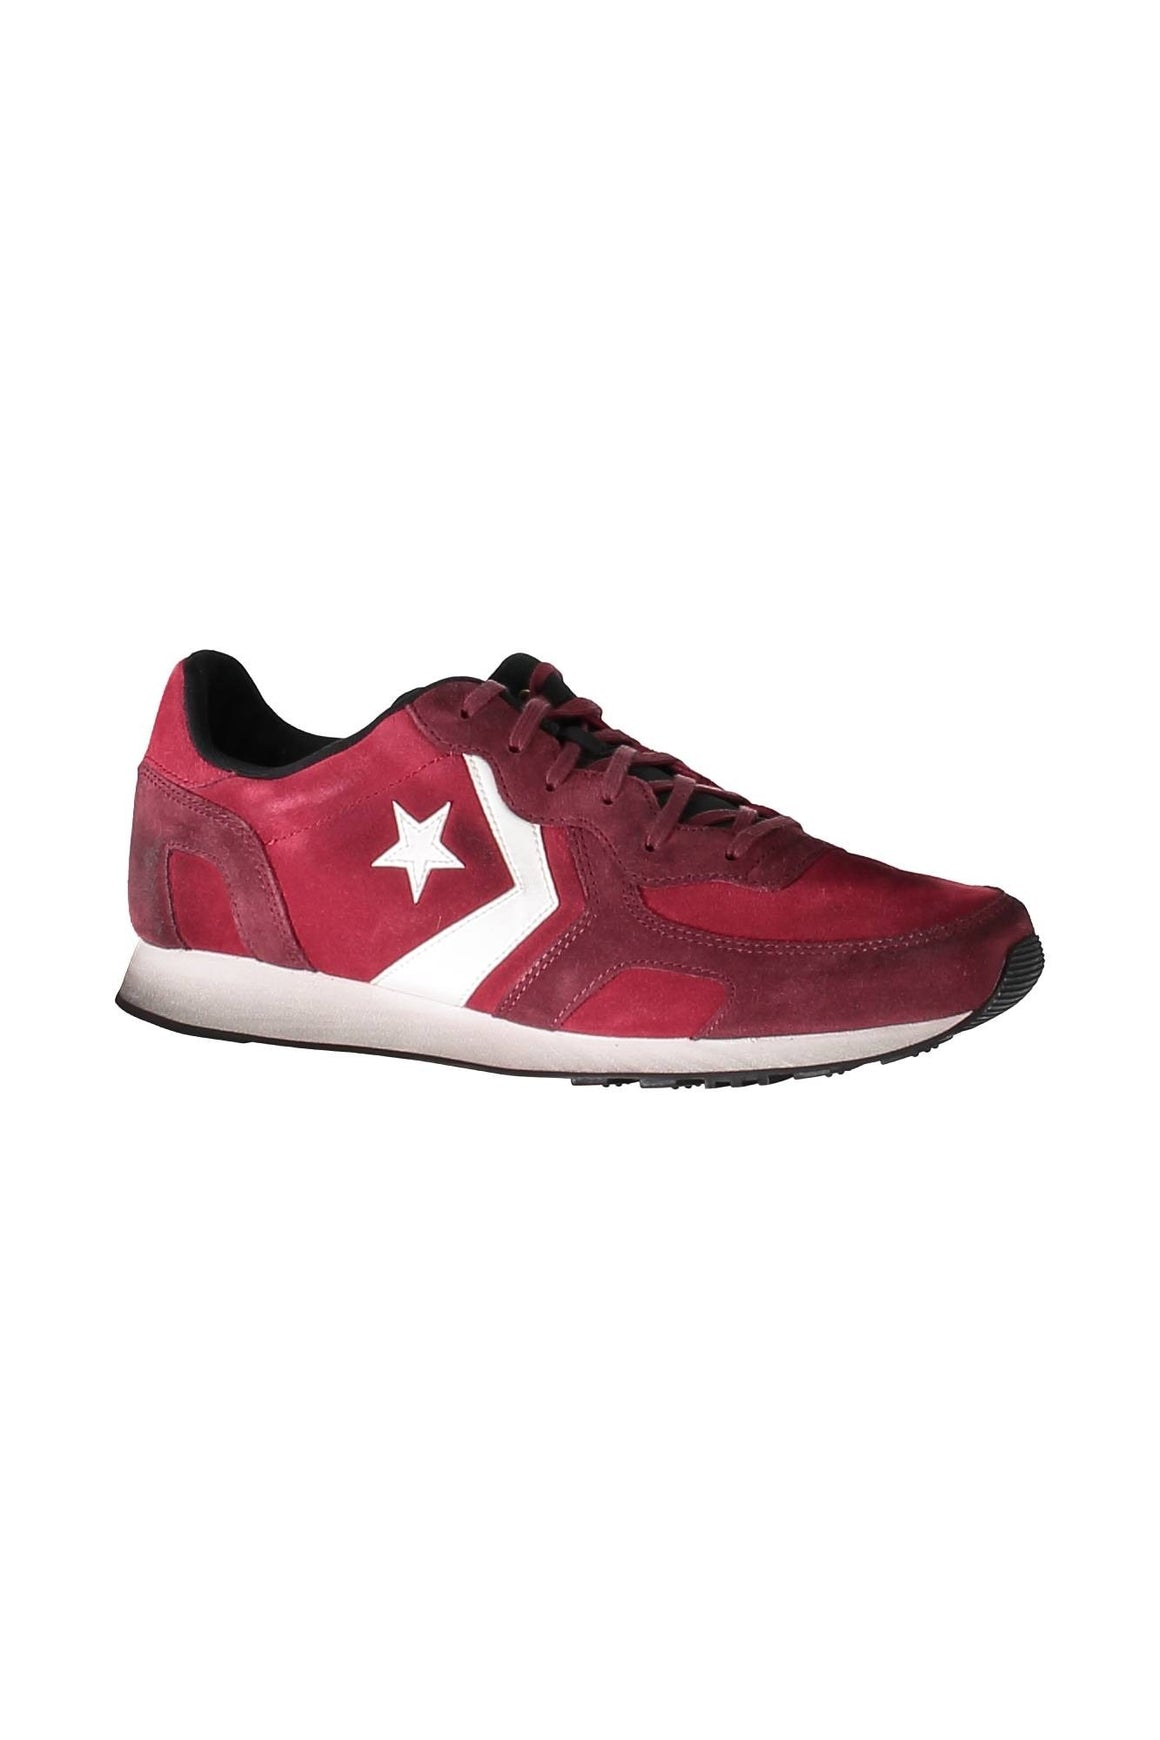 converse BO-155147C_RIO_RED_CHOCOLATE_TRUFFLE shoes